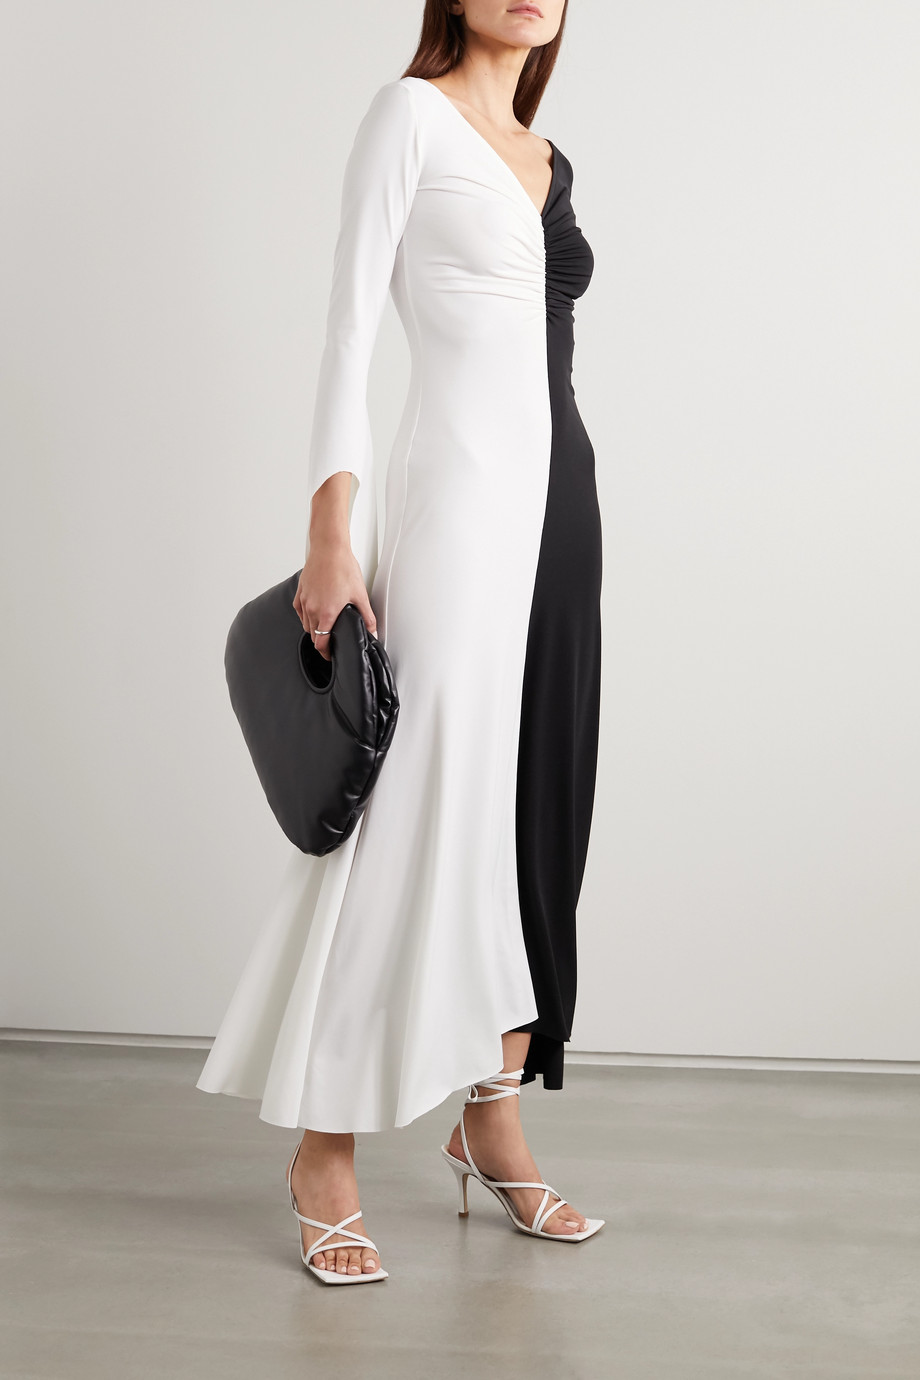 A.W.A.K.E. MODE Two-tone ruched crepe maxi dress